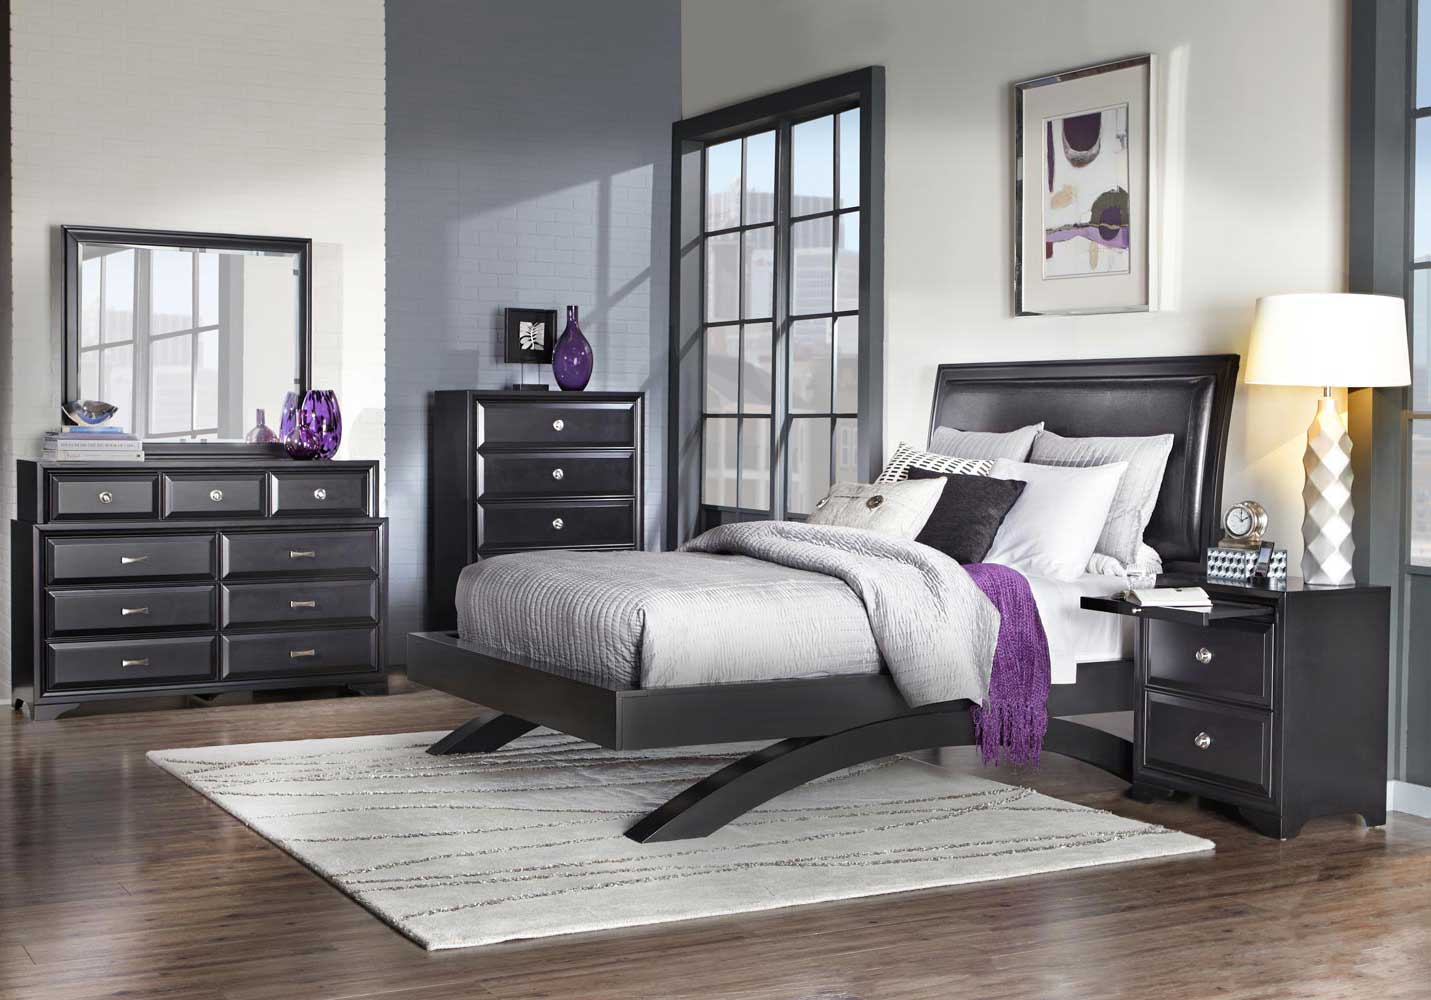 Bassett Bedroom Furniture Medium Size Of Barn Wood Bedroom Furniture Bassett Bedroom Furniture